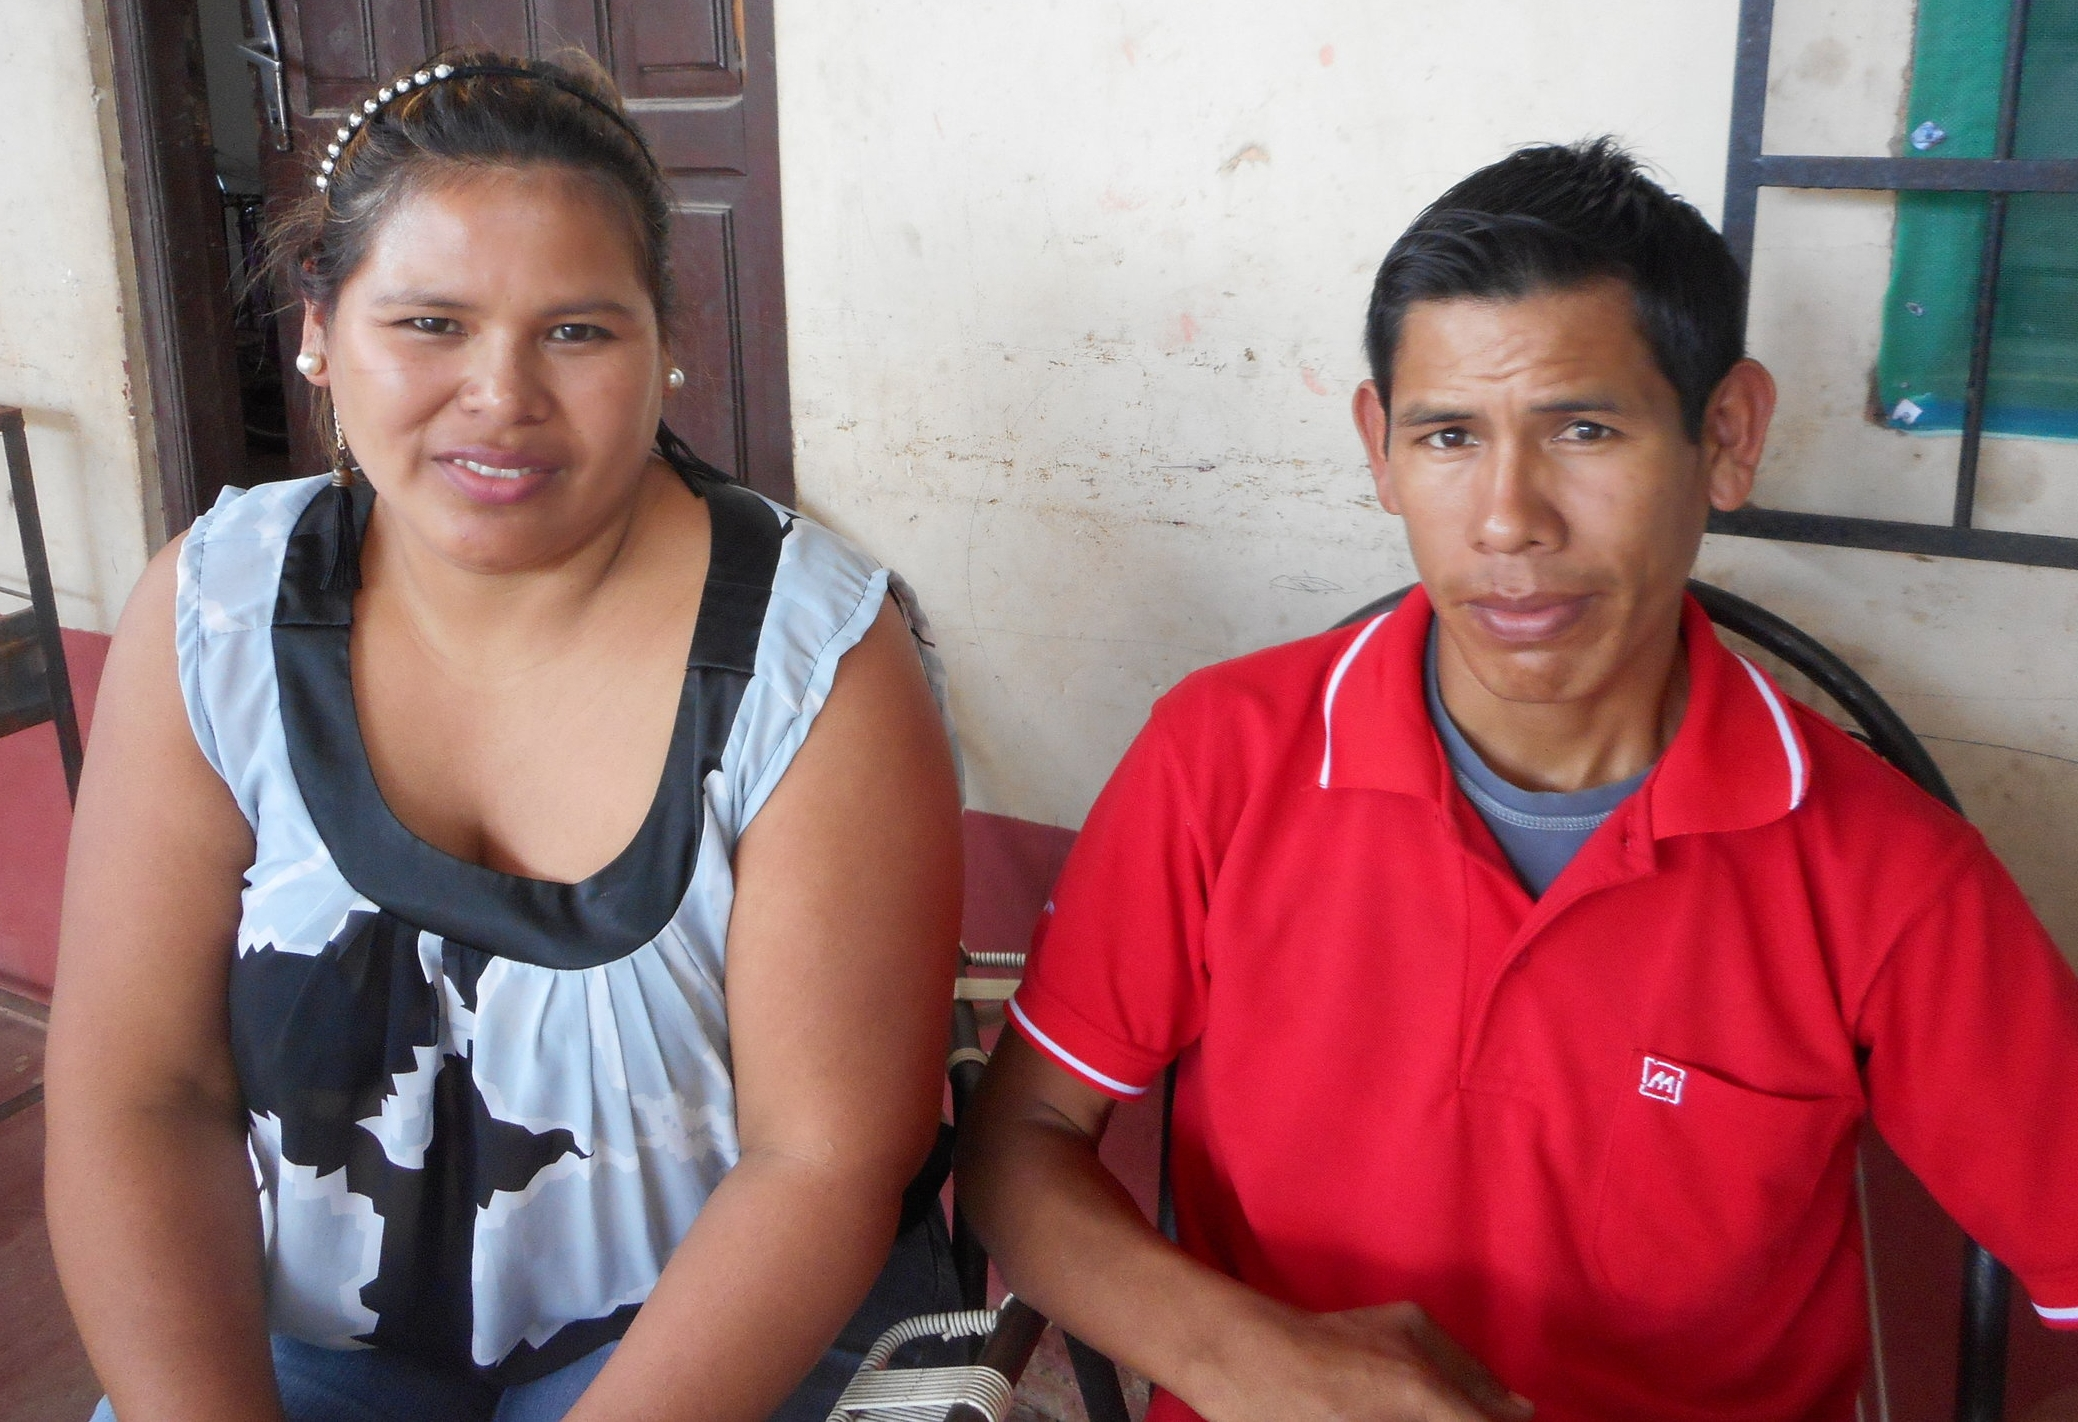 Victor and his sister, pictured at home before his surgery